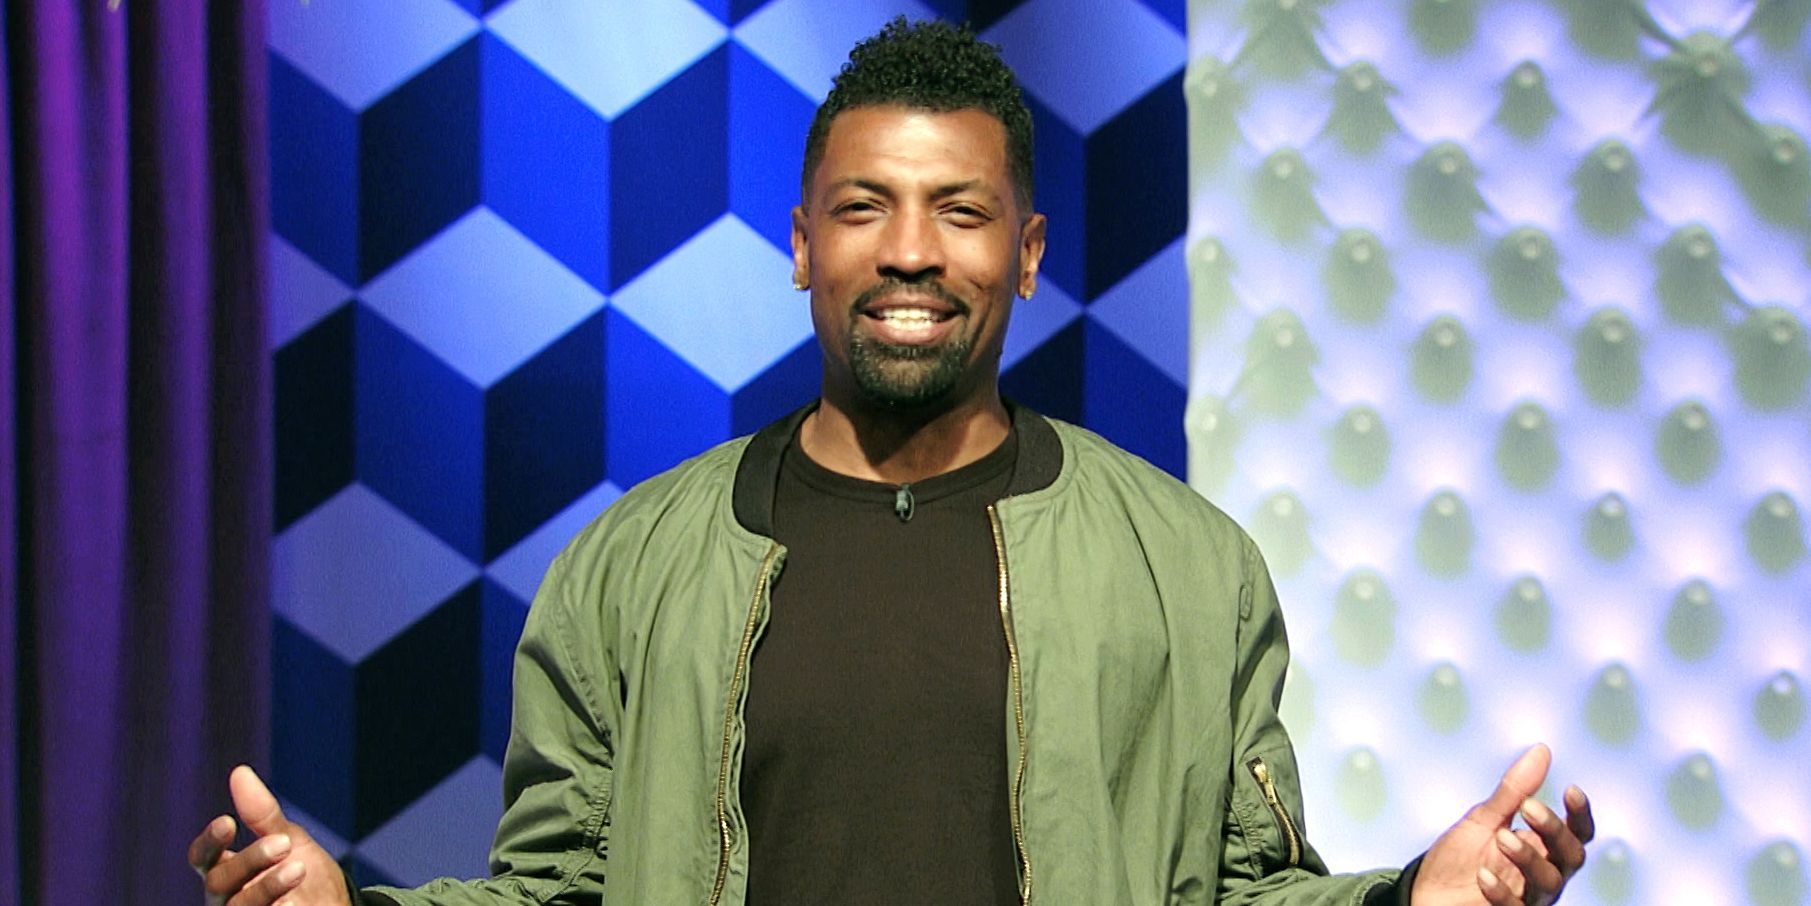 092617-shows-face-value-deon-cole.jpg